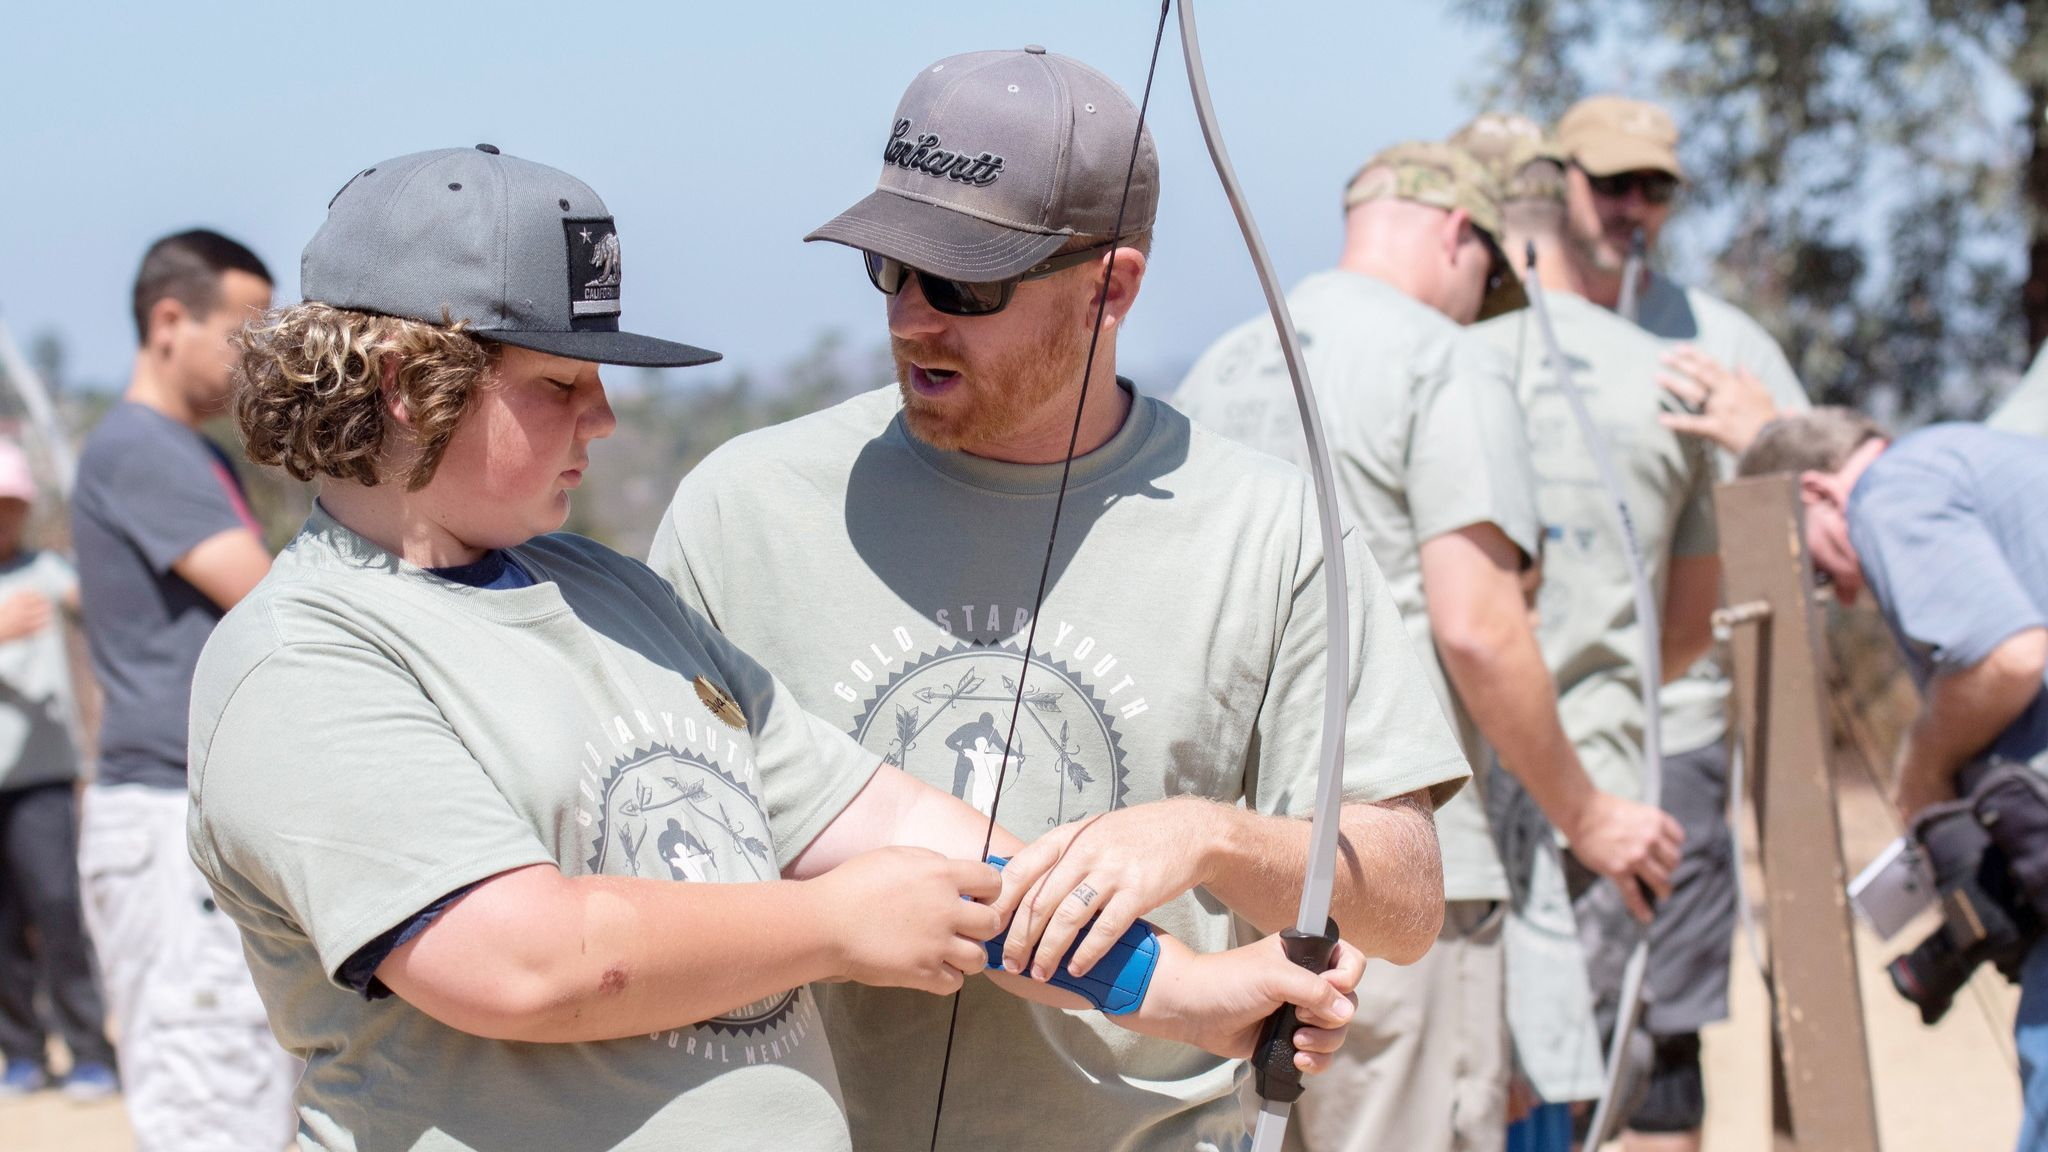 Wyatt Busby, left, gets a lesson in shooting arrows from mentor Wayne Gibson. Both were participating in The Special Liberty Project's mentoring at Lake Poway's archery range.